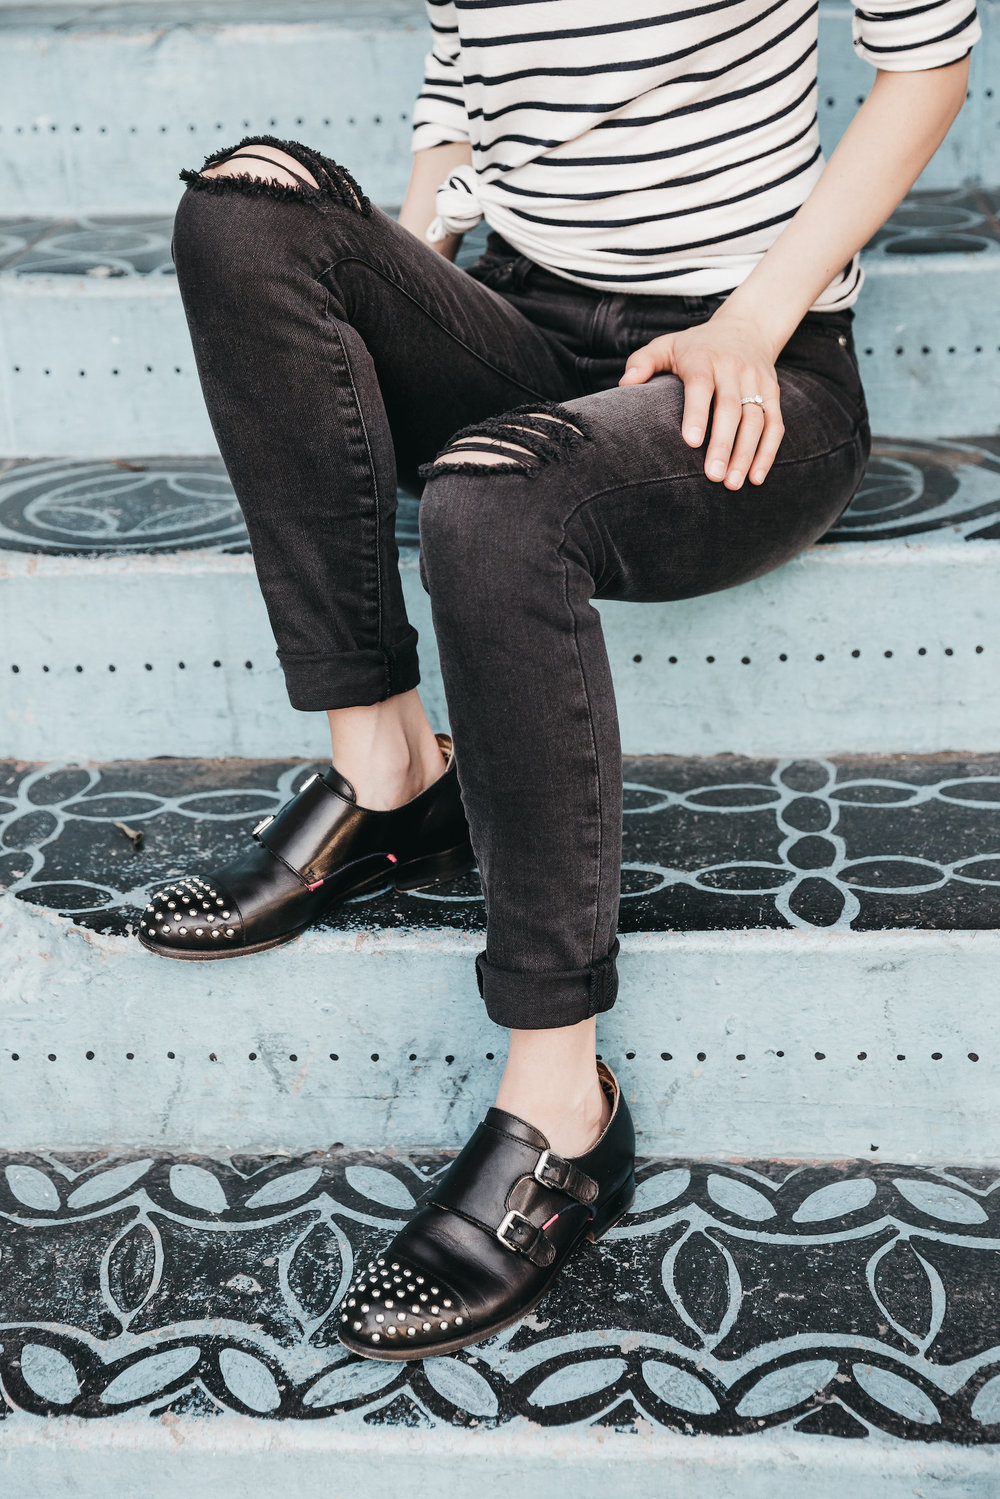 Leather shoes & black denim // A Week Of Bright & Bold Ethical Outfits With Michelle Chavez From Michelle For Good on The Good Trade